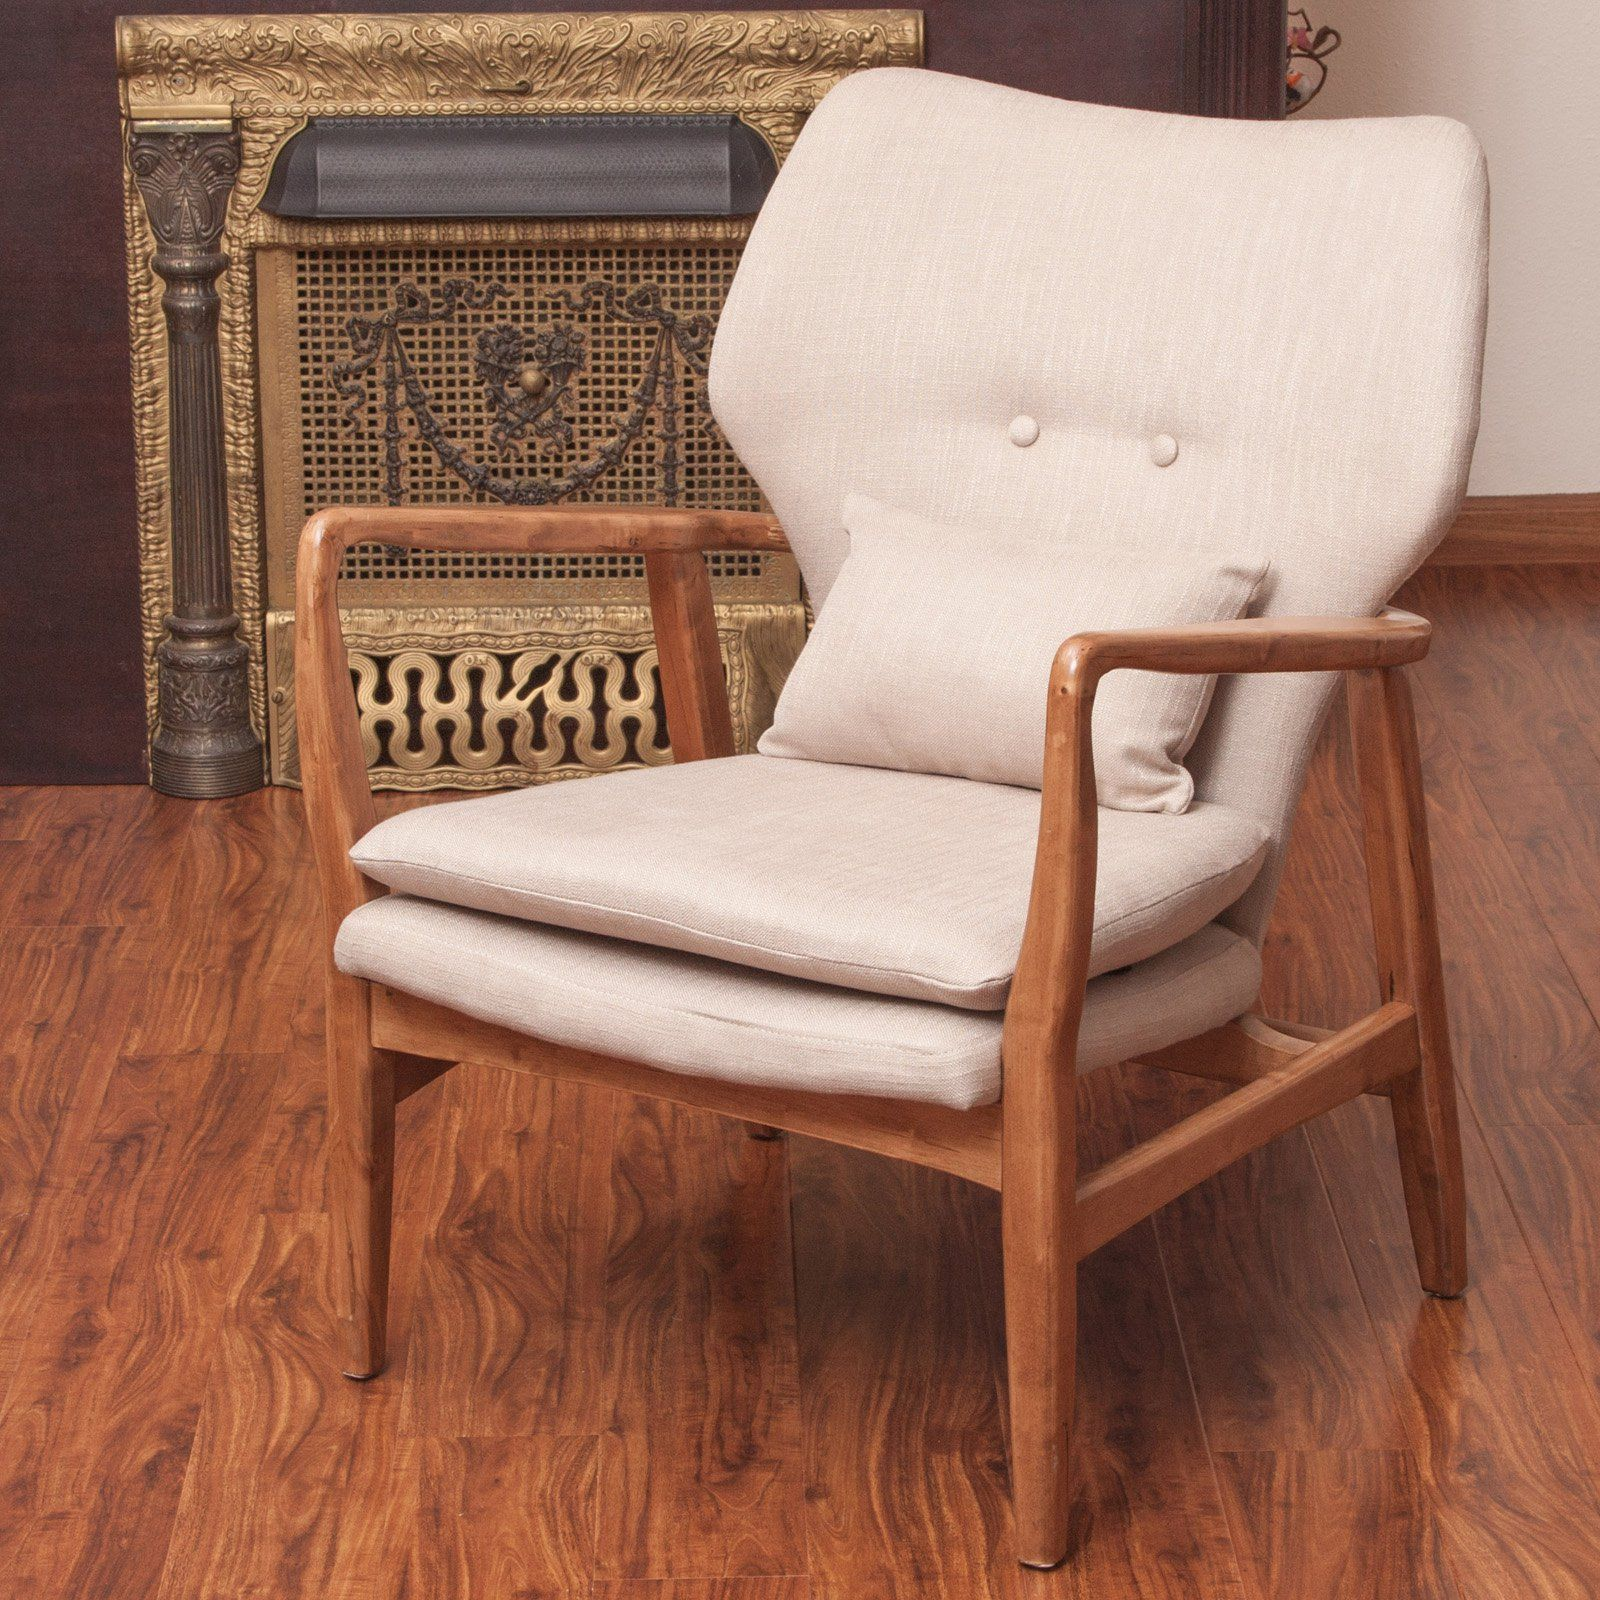 Best Selling Home Engstrom Accent Chair from hayneedle